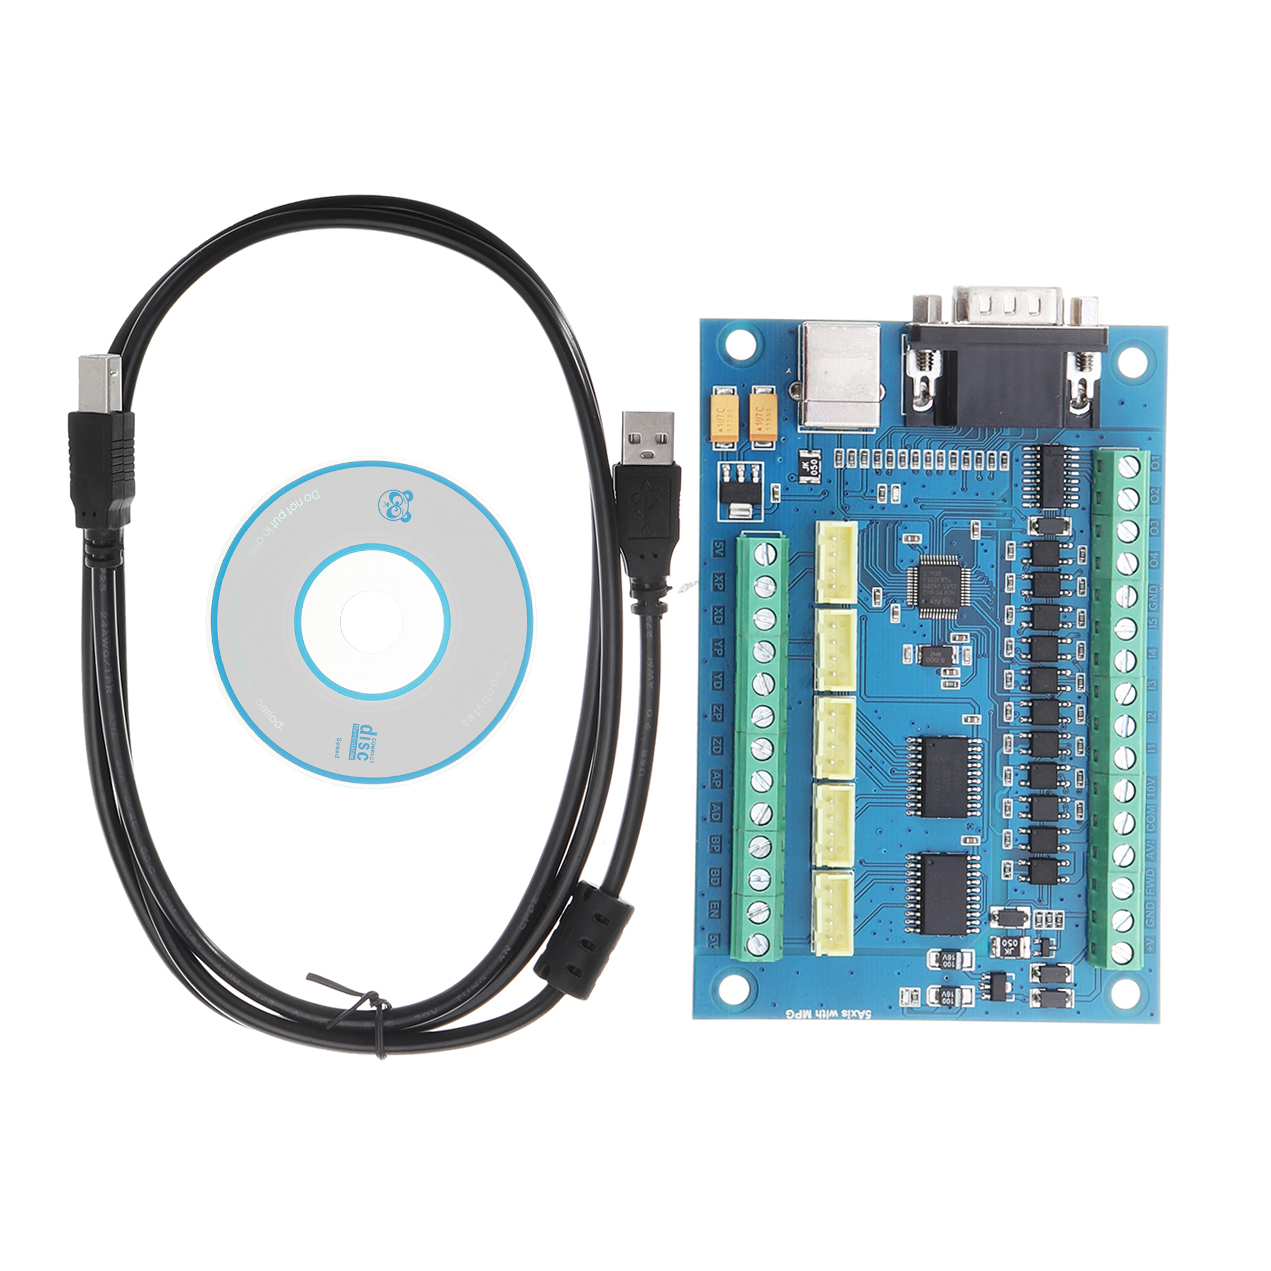 CNC Driver Board USB MACH3 Engraving Machine 5-Axis with MPG Stepper Motor Controller Card